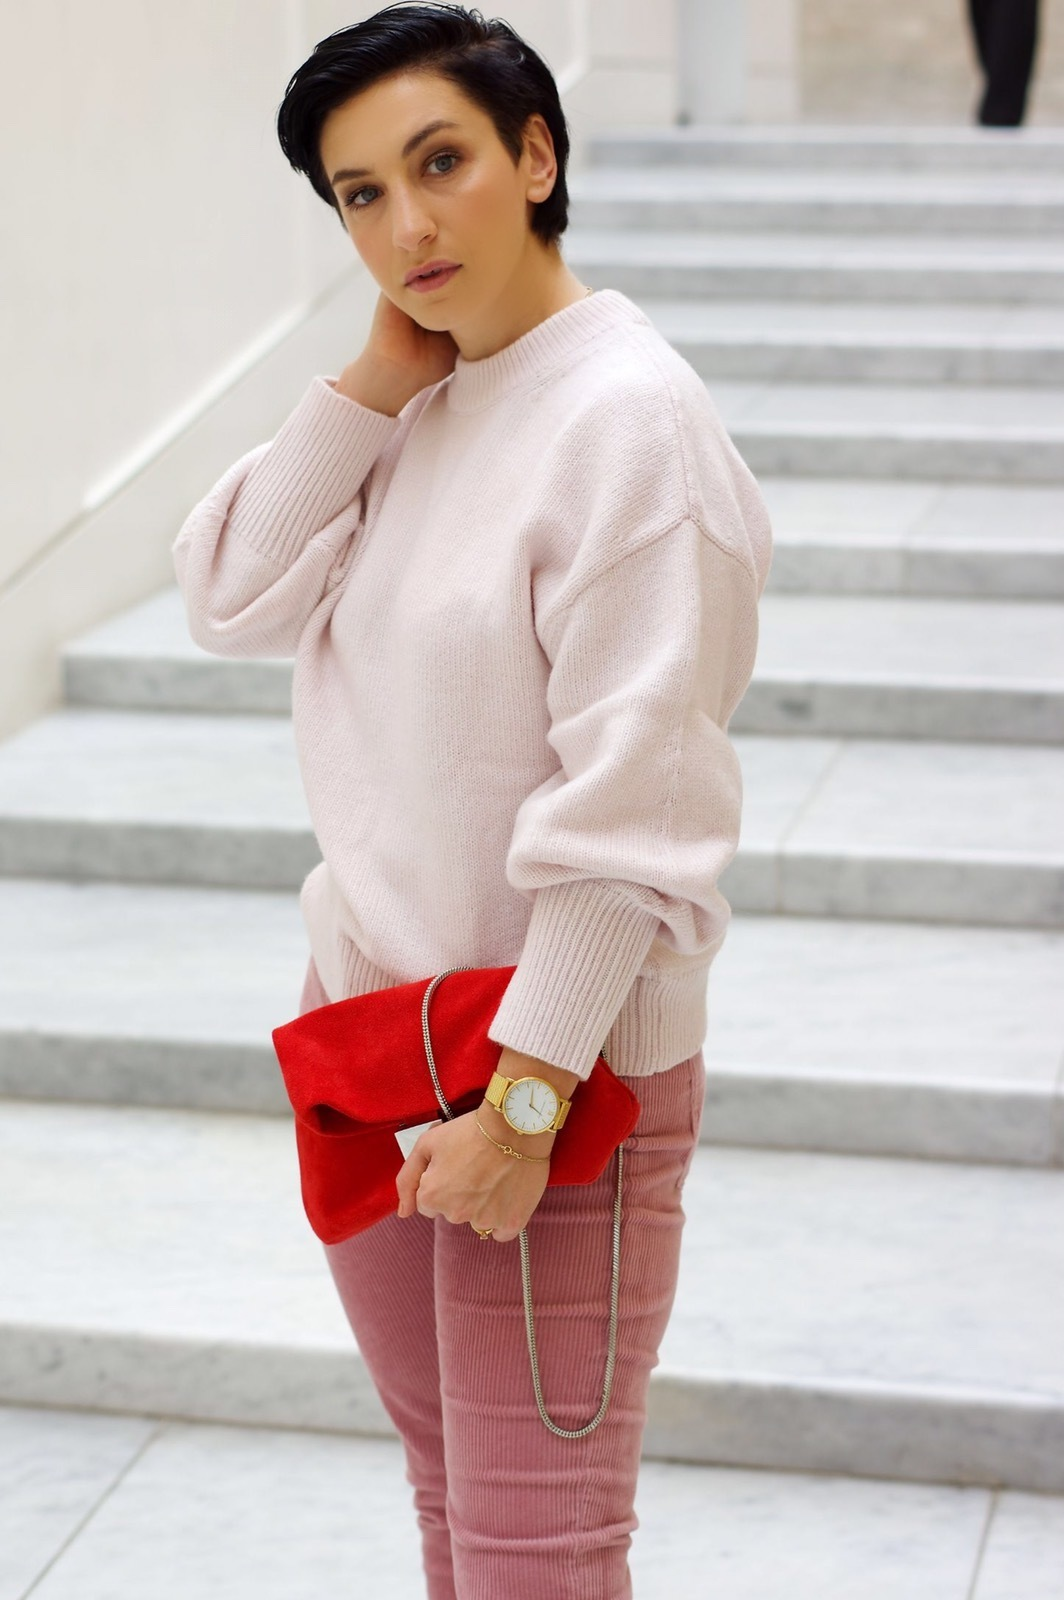 Corduroy trousers pink sweater fall outfit fall fashion, how to make someone smile